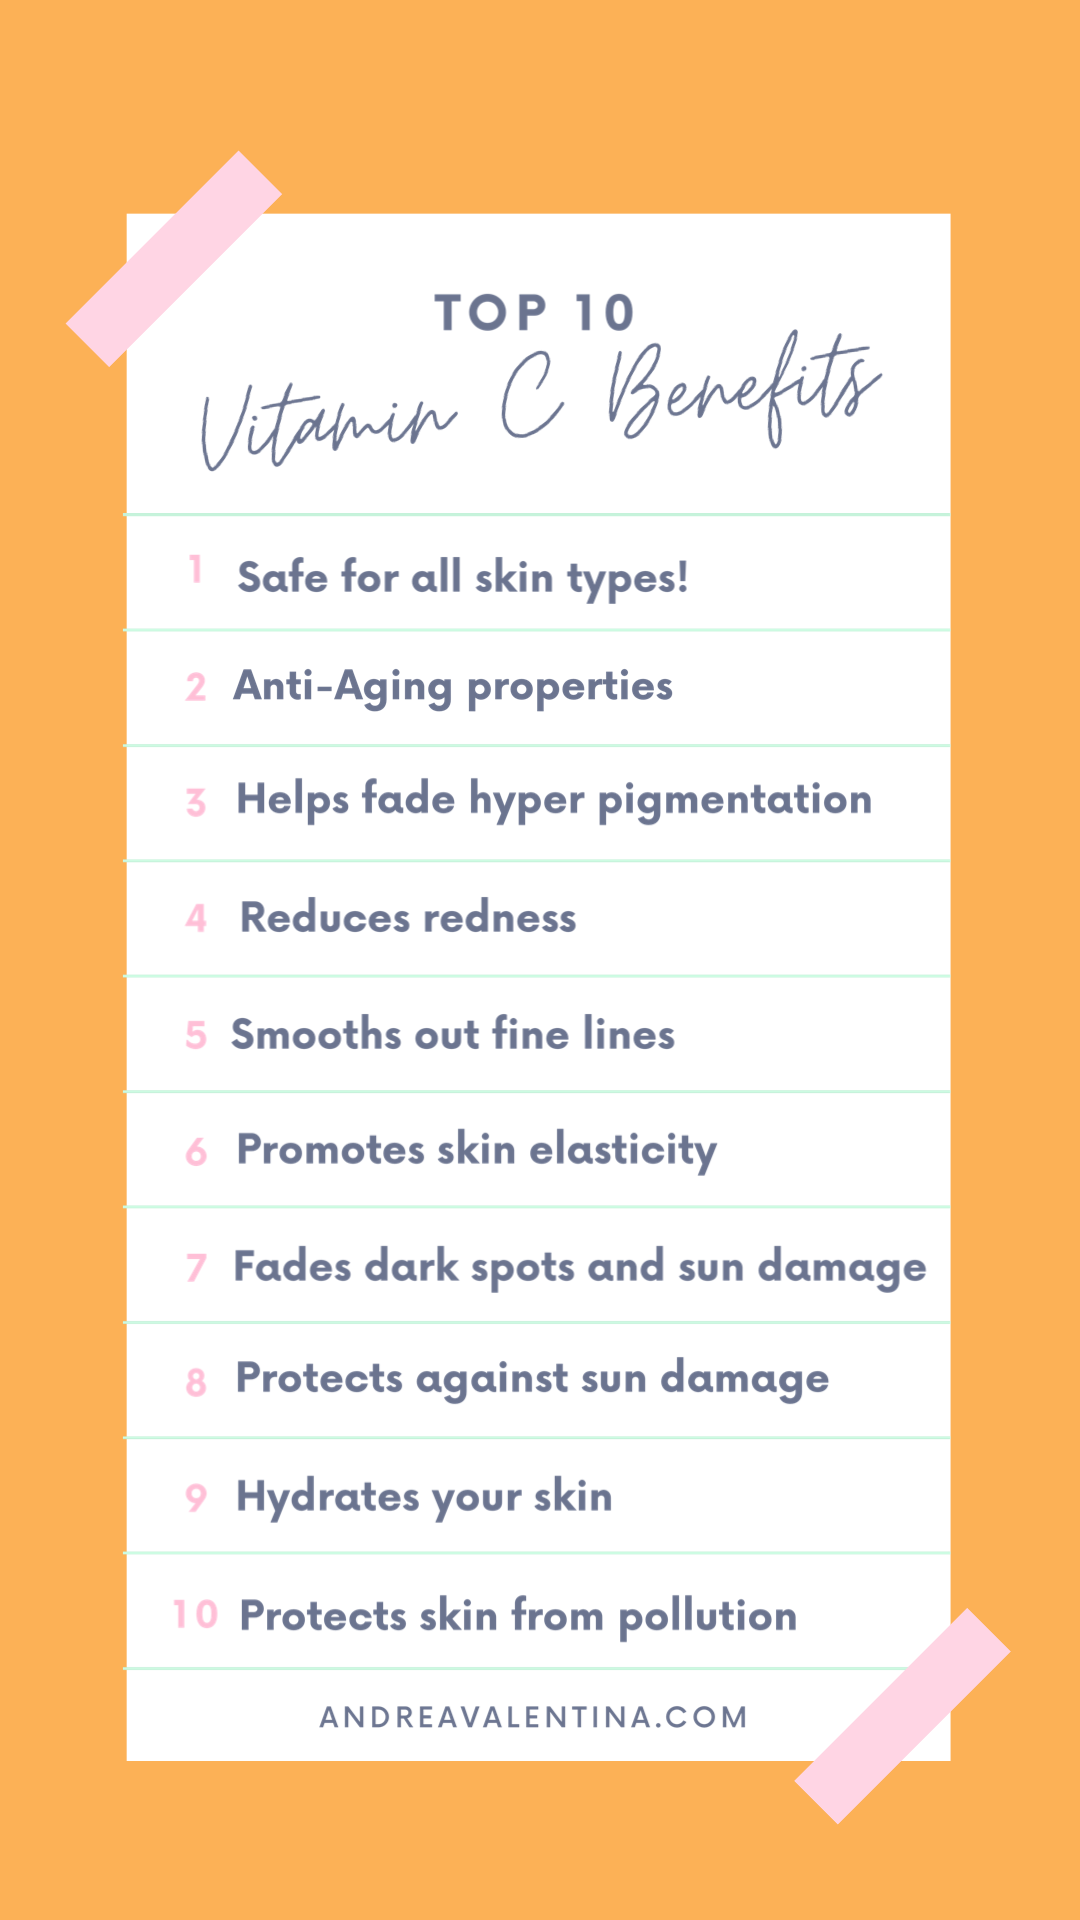 The Top 10 Benefits of using Vitamin C in your Skincare Routine.